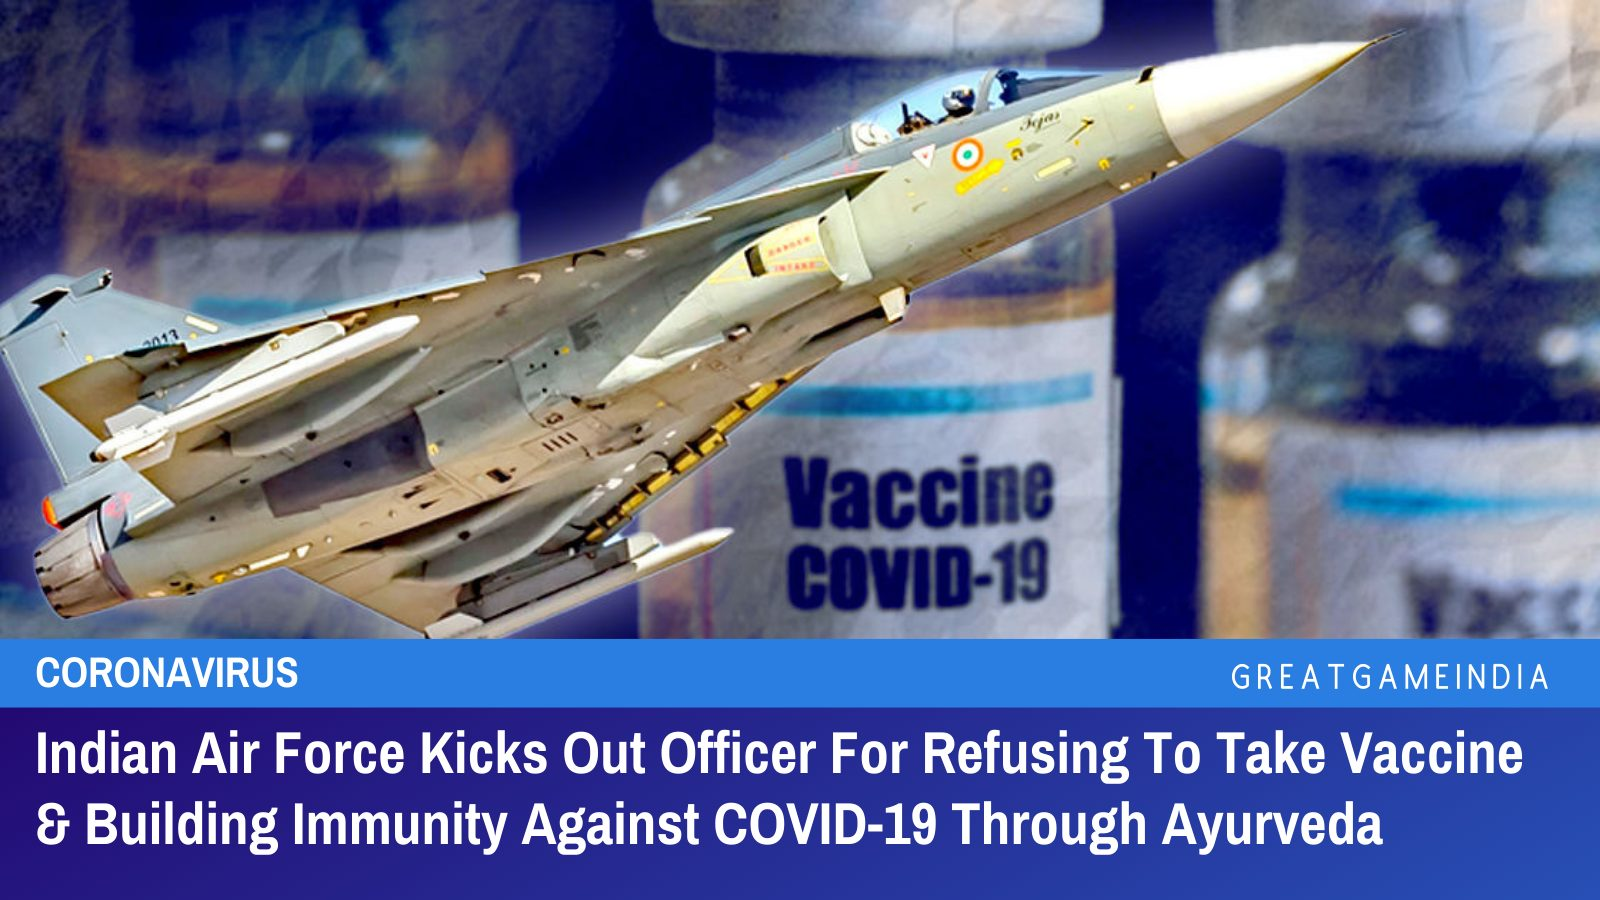 Indian Air Force Kicks Out Officer For Refusing To Take Vaccine & Building Immunity Against COVID-19 Through Ayurveda